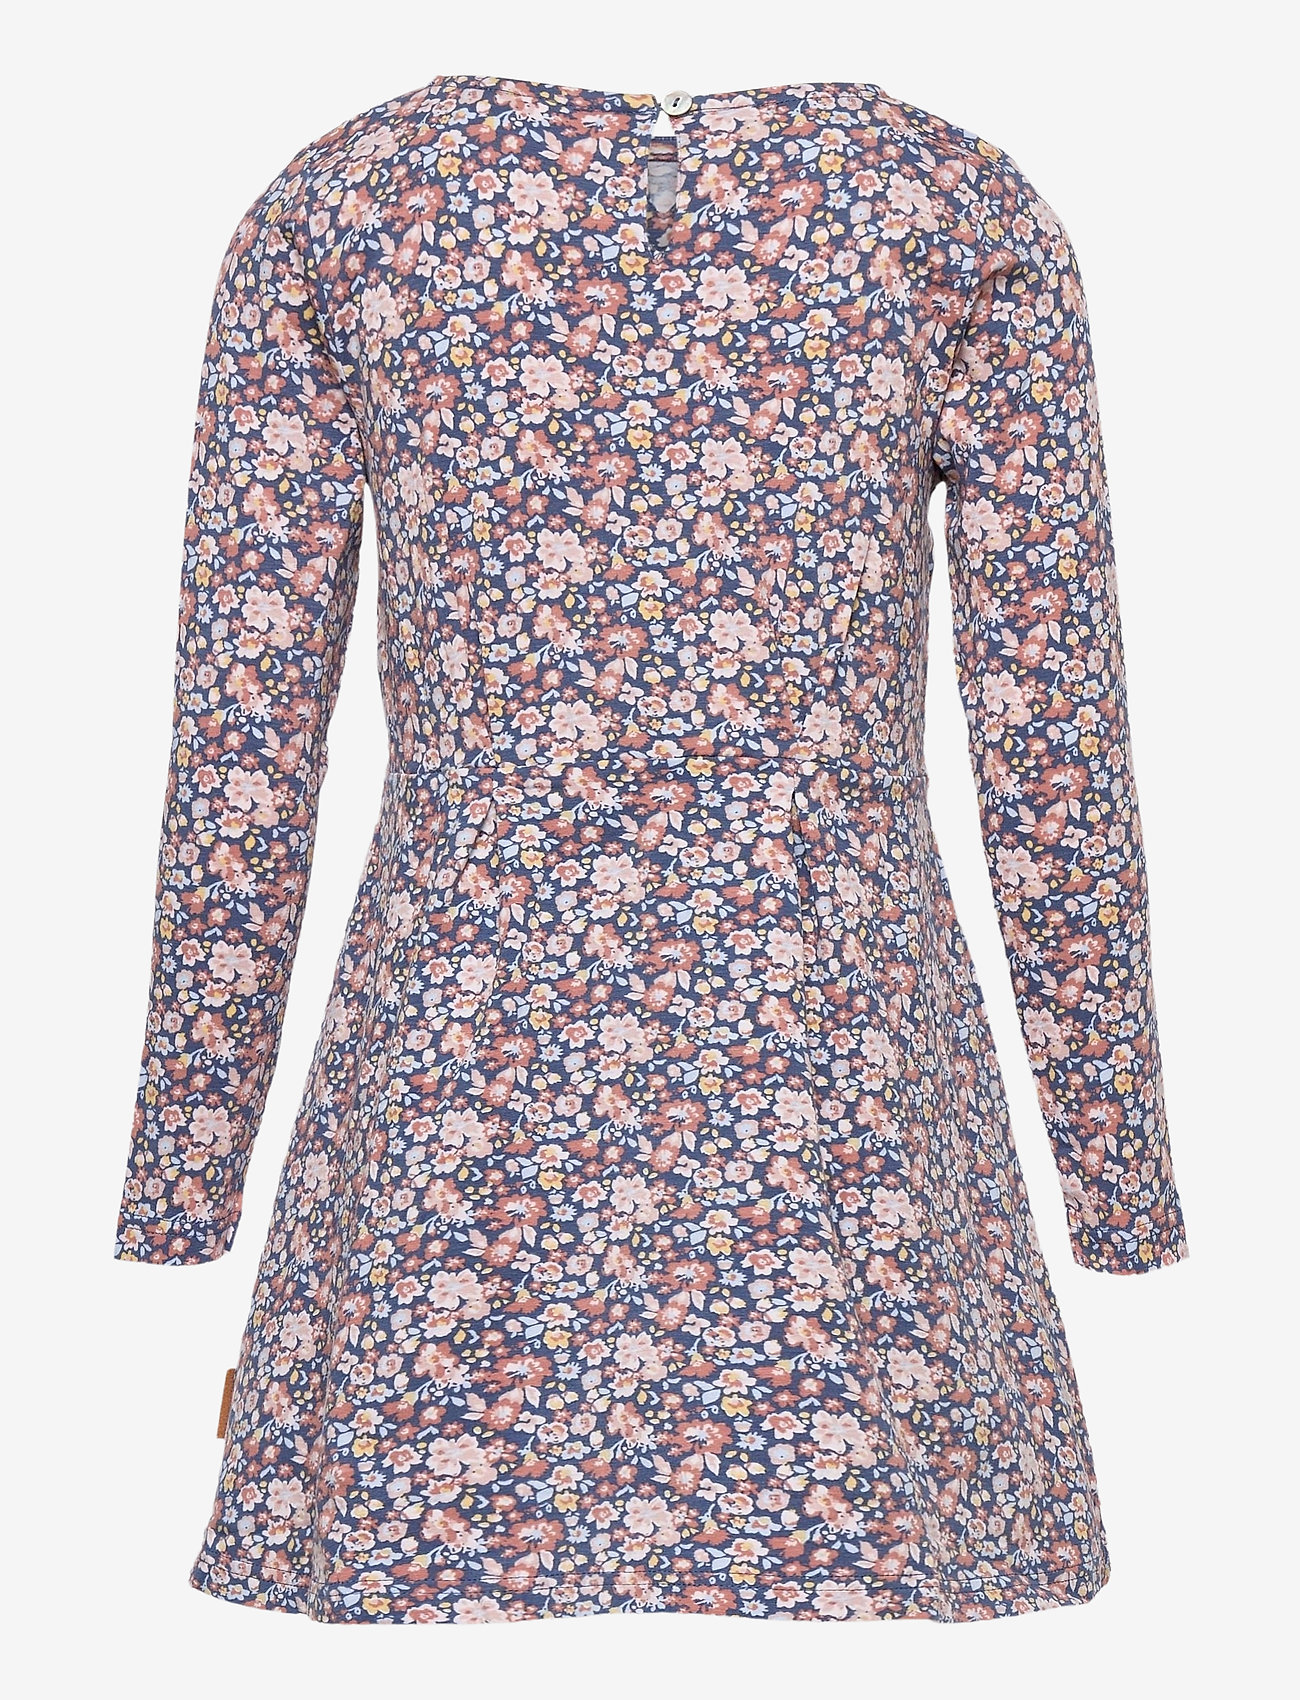 Hust & Claire - Delvin - Dress - kleider - peony blue - 1